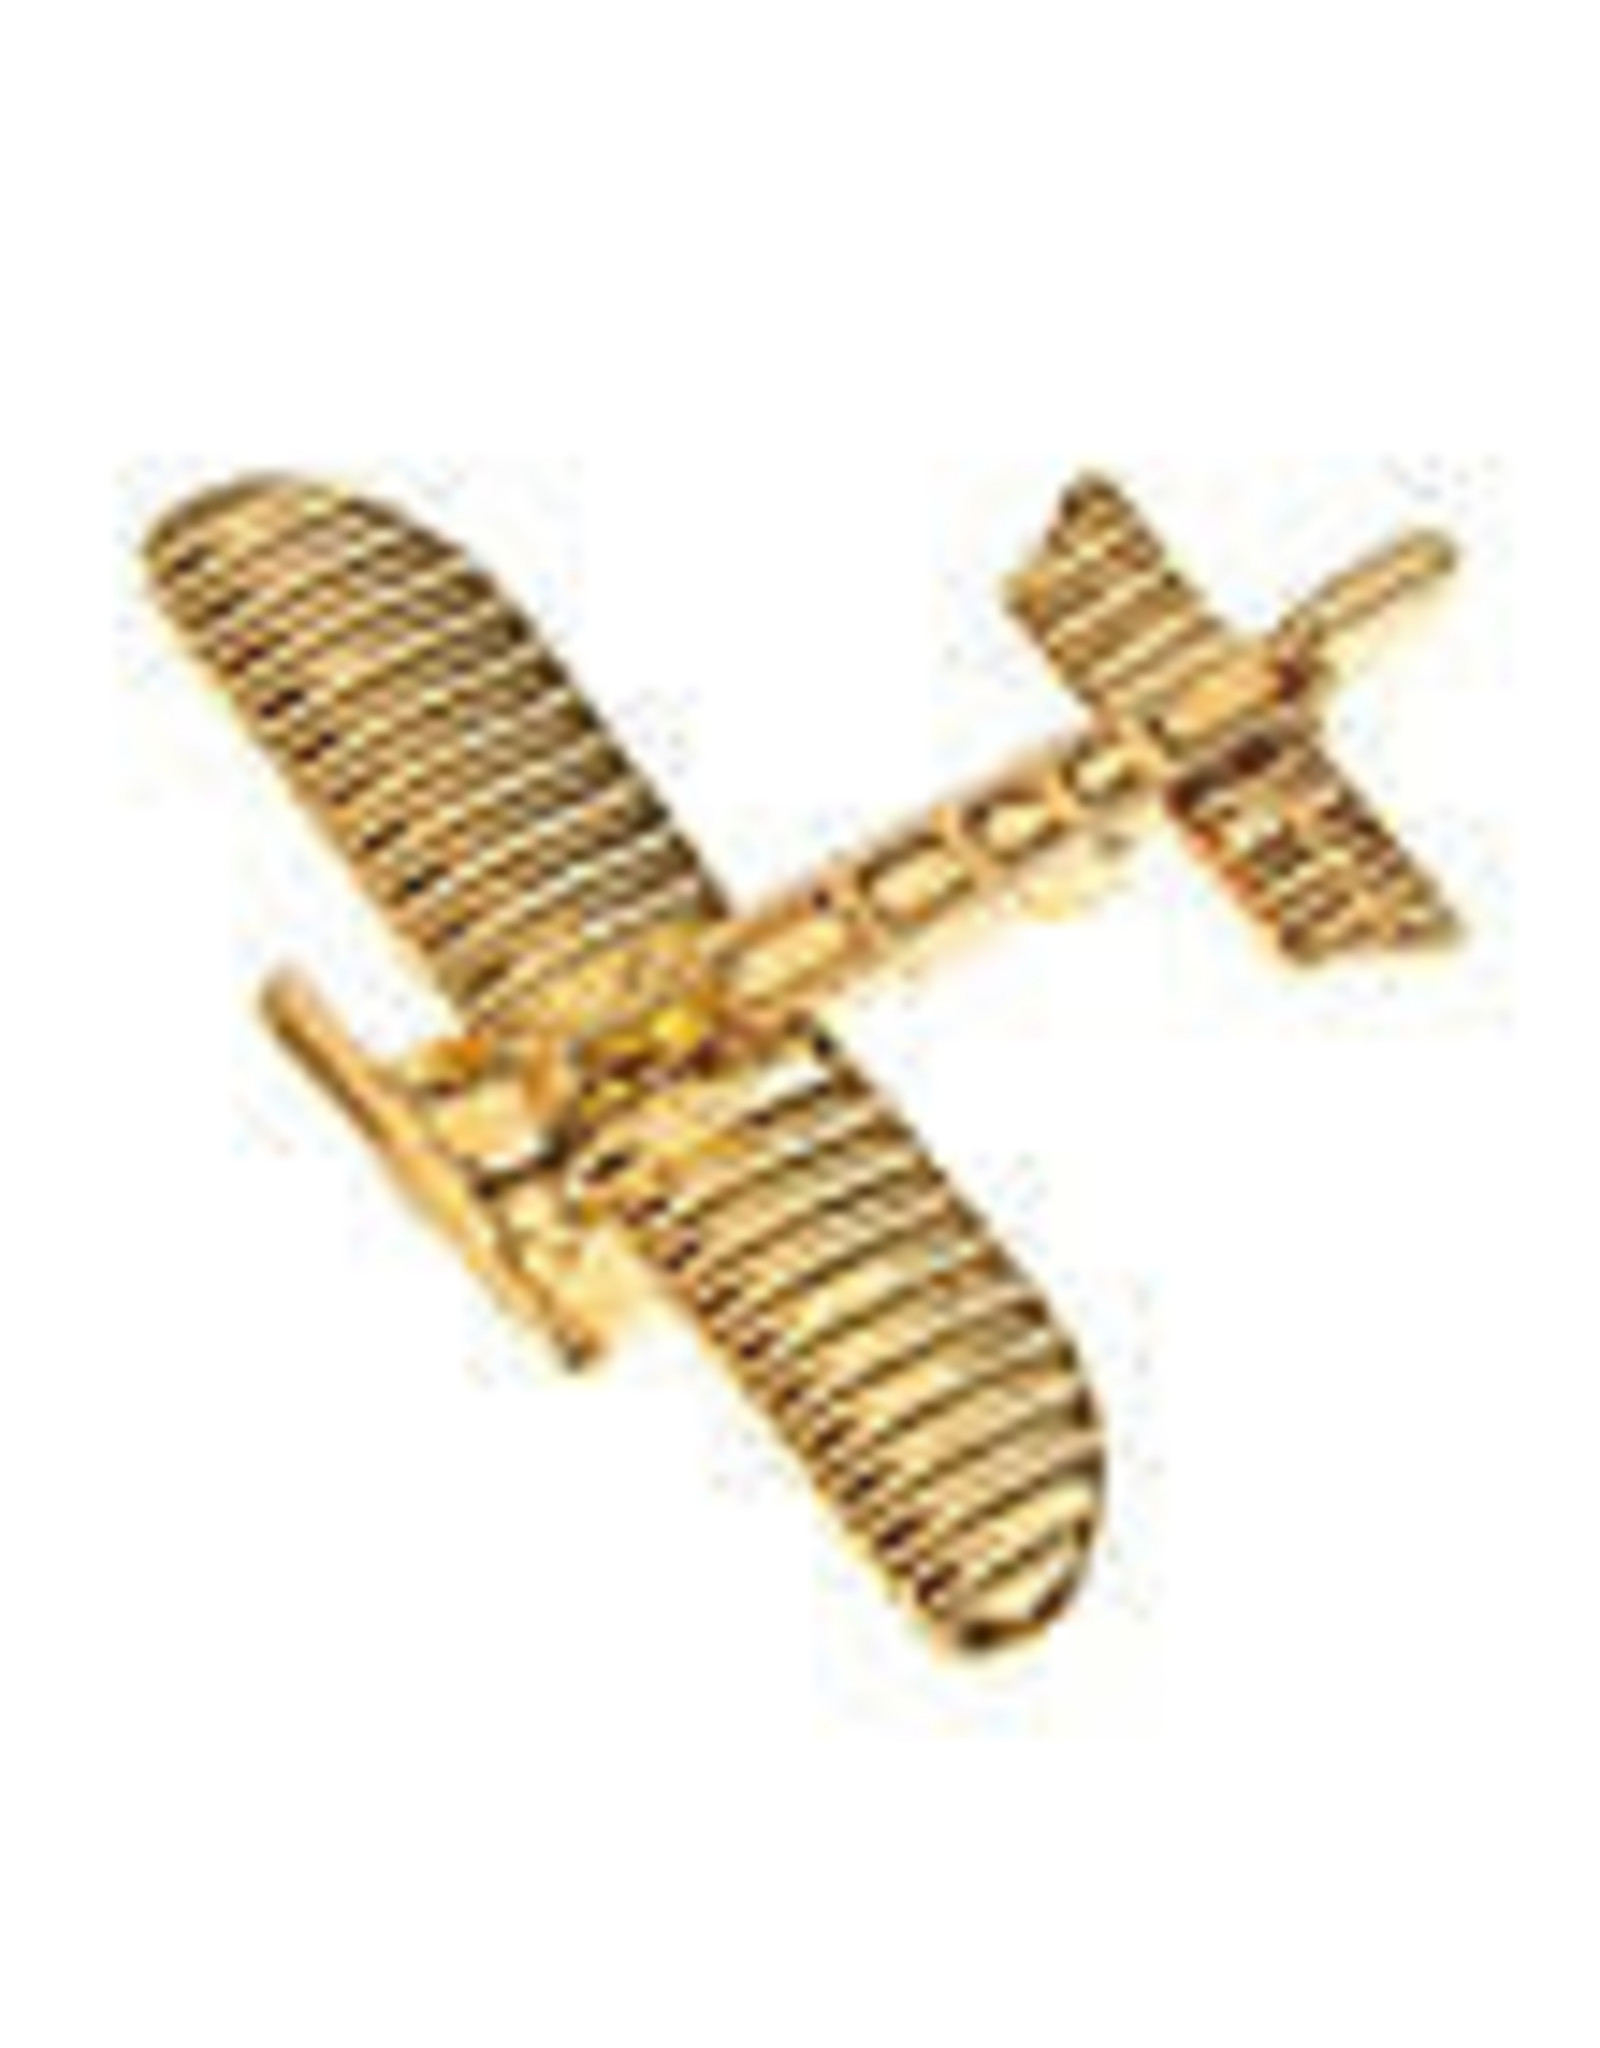 Clivedon Pin Badge Bleriot XI, Pin, gold